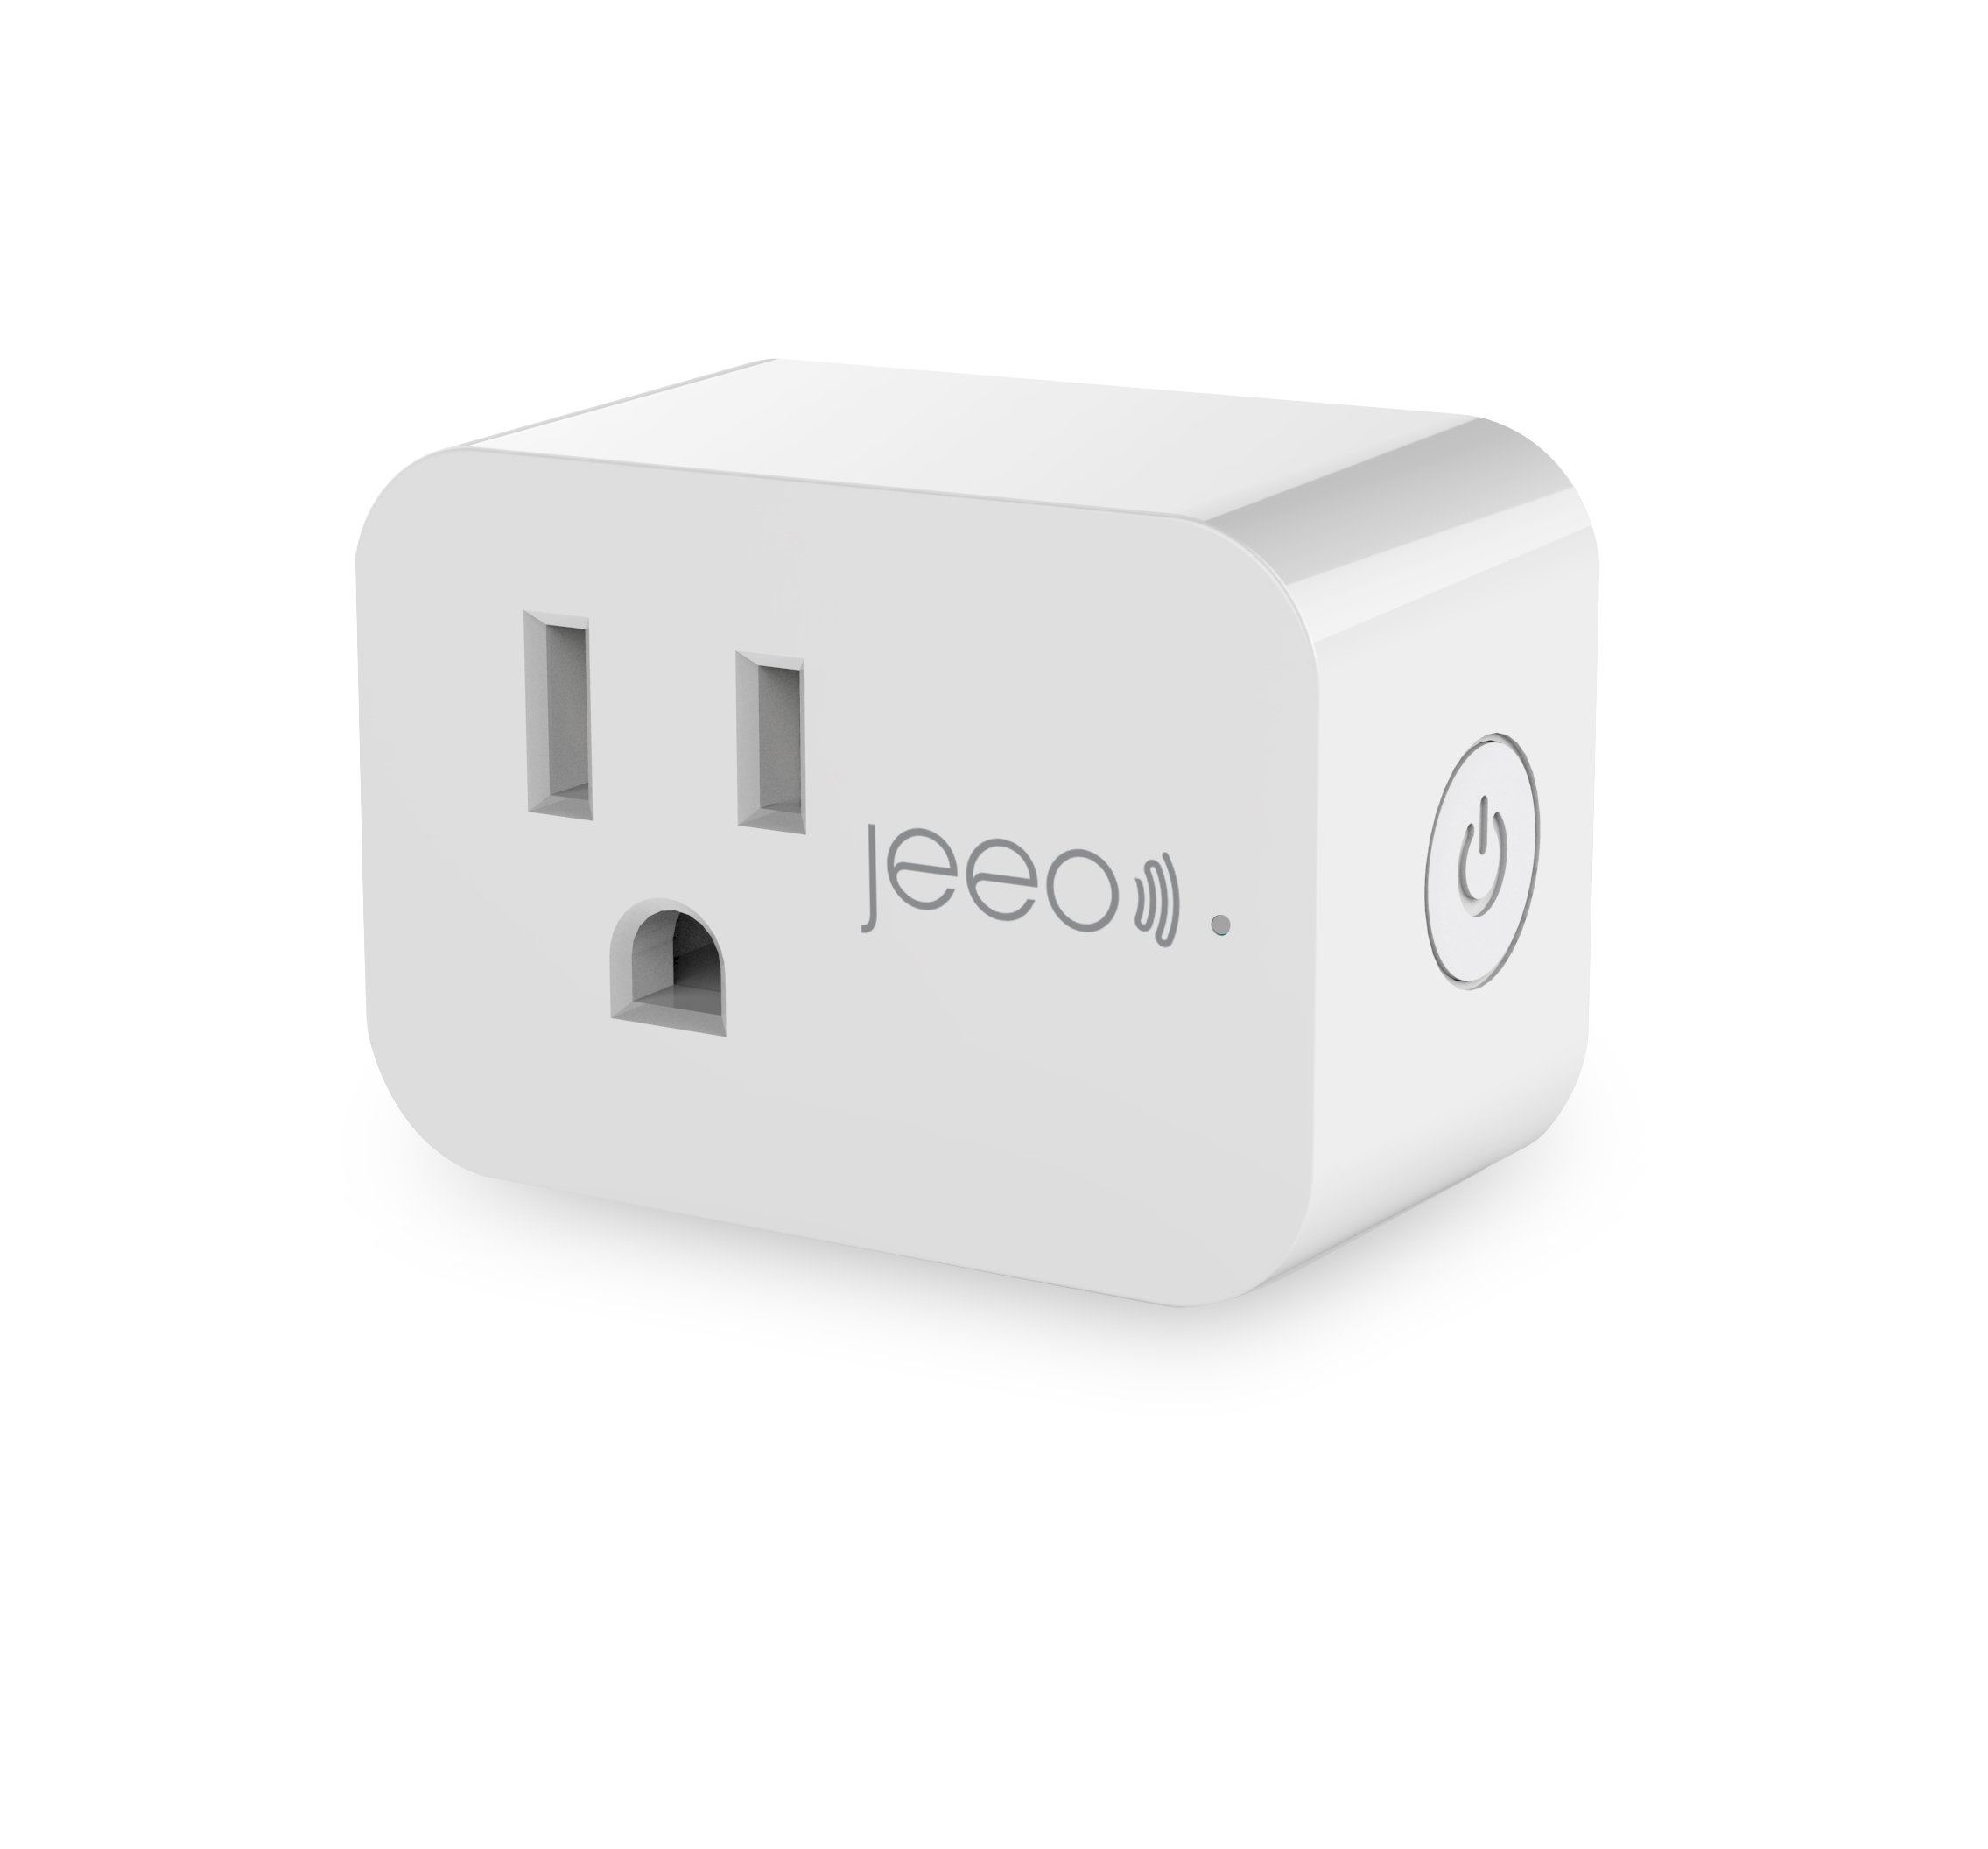 Jeeo Smart Wi-Fi Plug+ Built-in Energy Monitoring, Works with Amazon Alexa and Google Assistant, Jeeo Smart Home App Remote Control